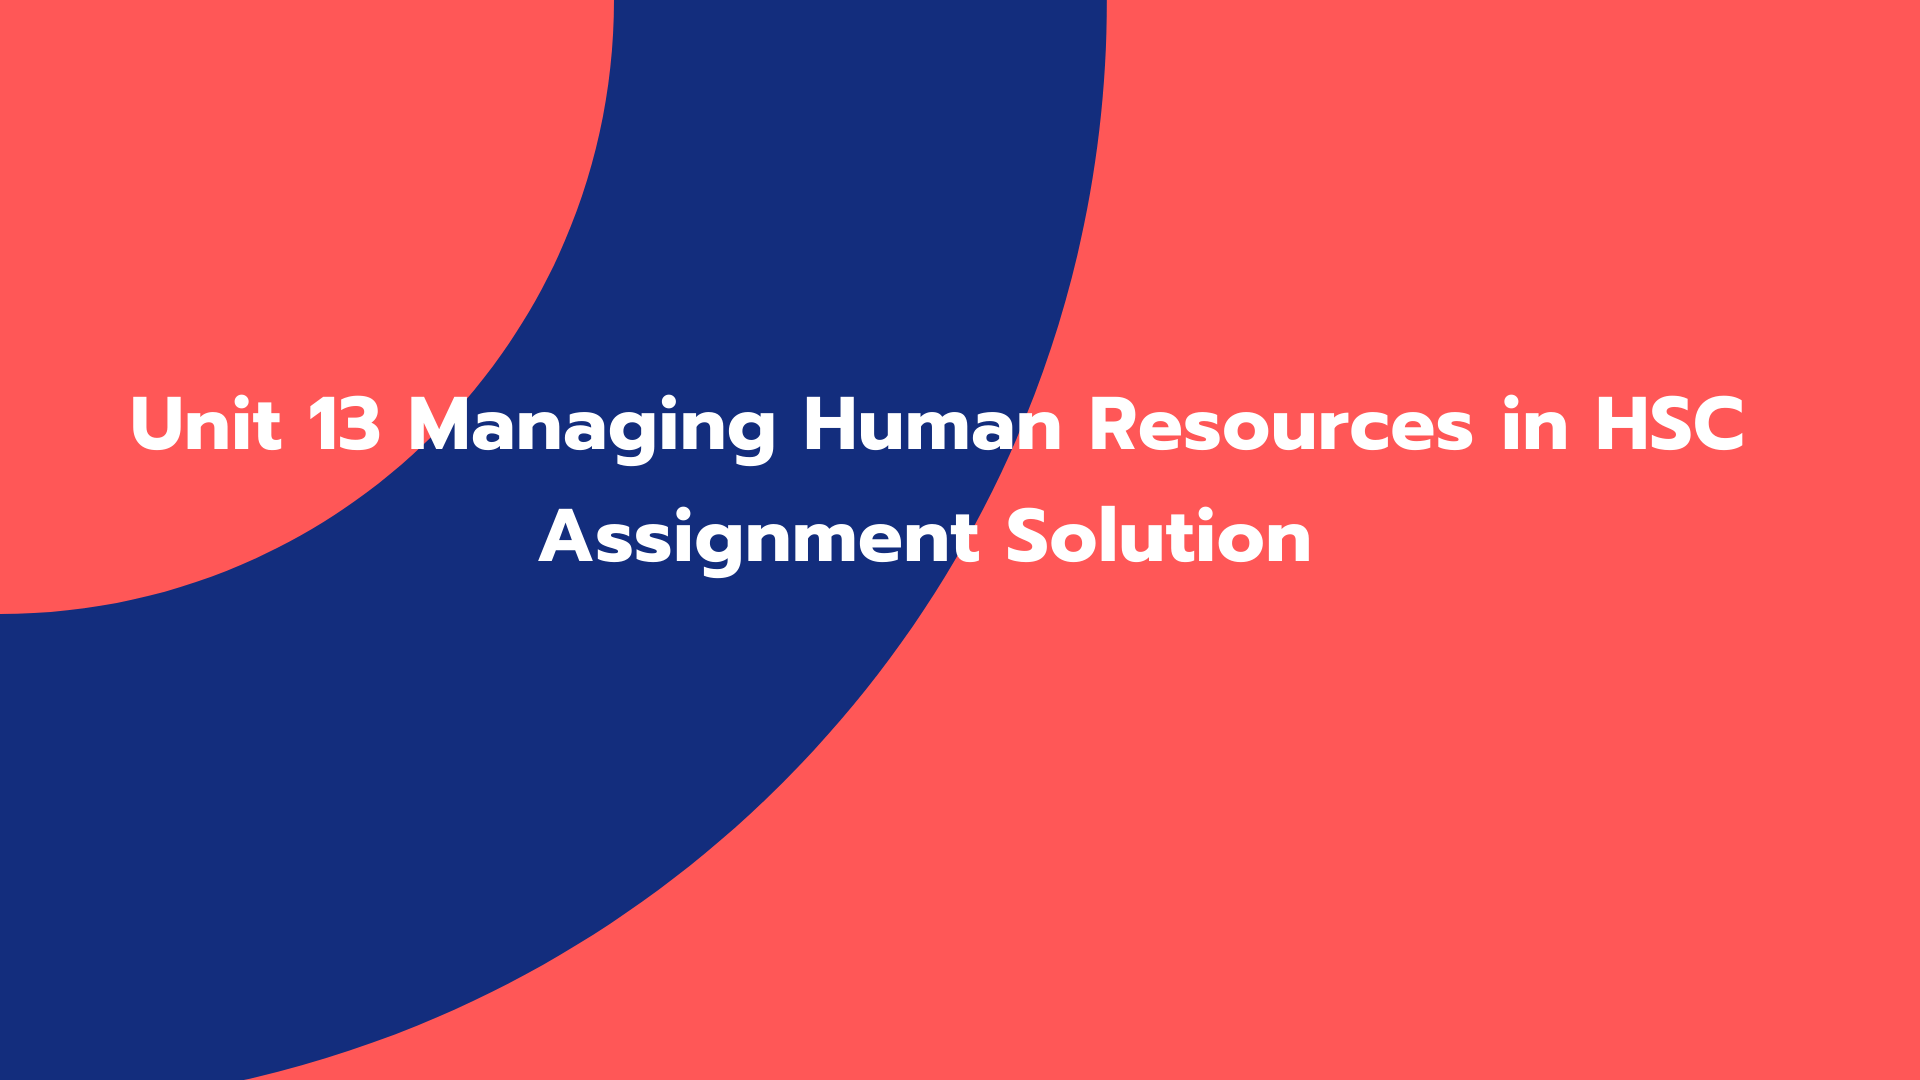 Unit 13 Managing Human Resources in HSC Assignment Solution